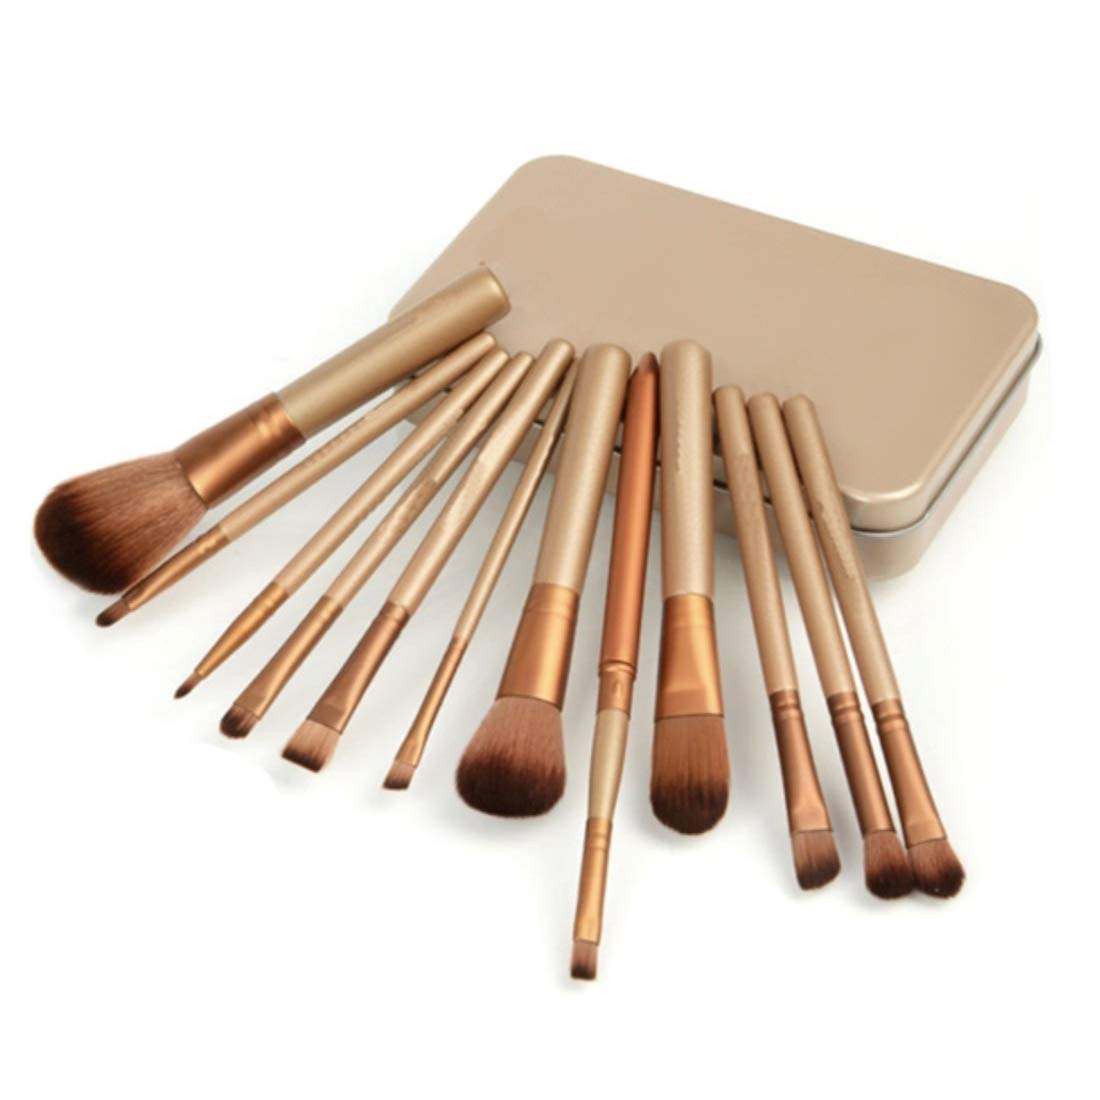 12 Piece Bronze Makeup Brush Set New Shipping Free with Deals M Latest item Case I